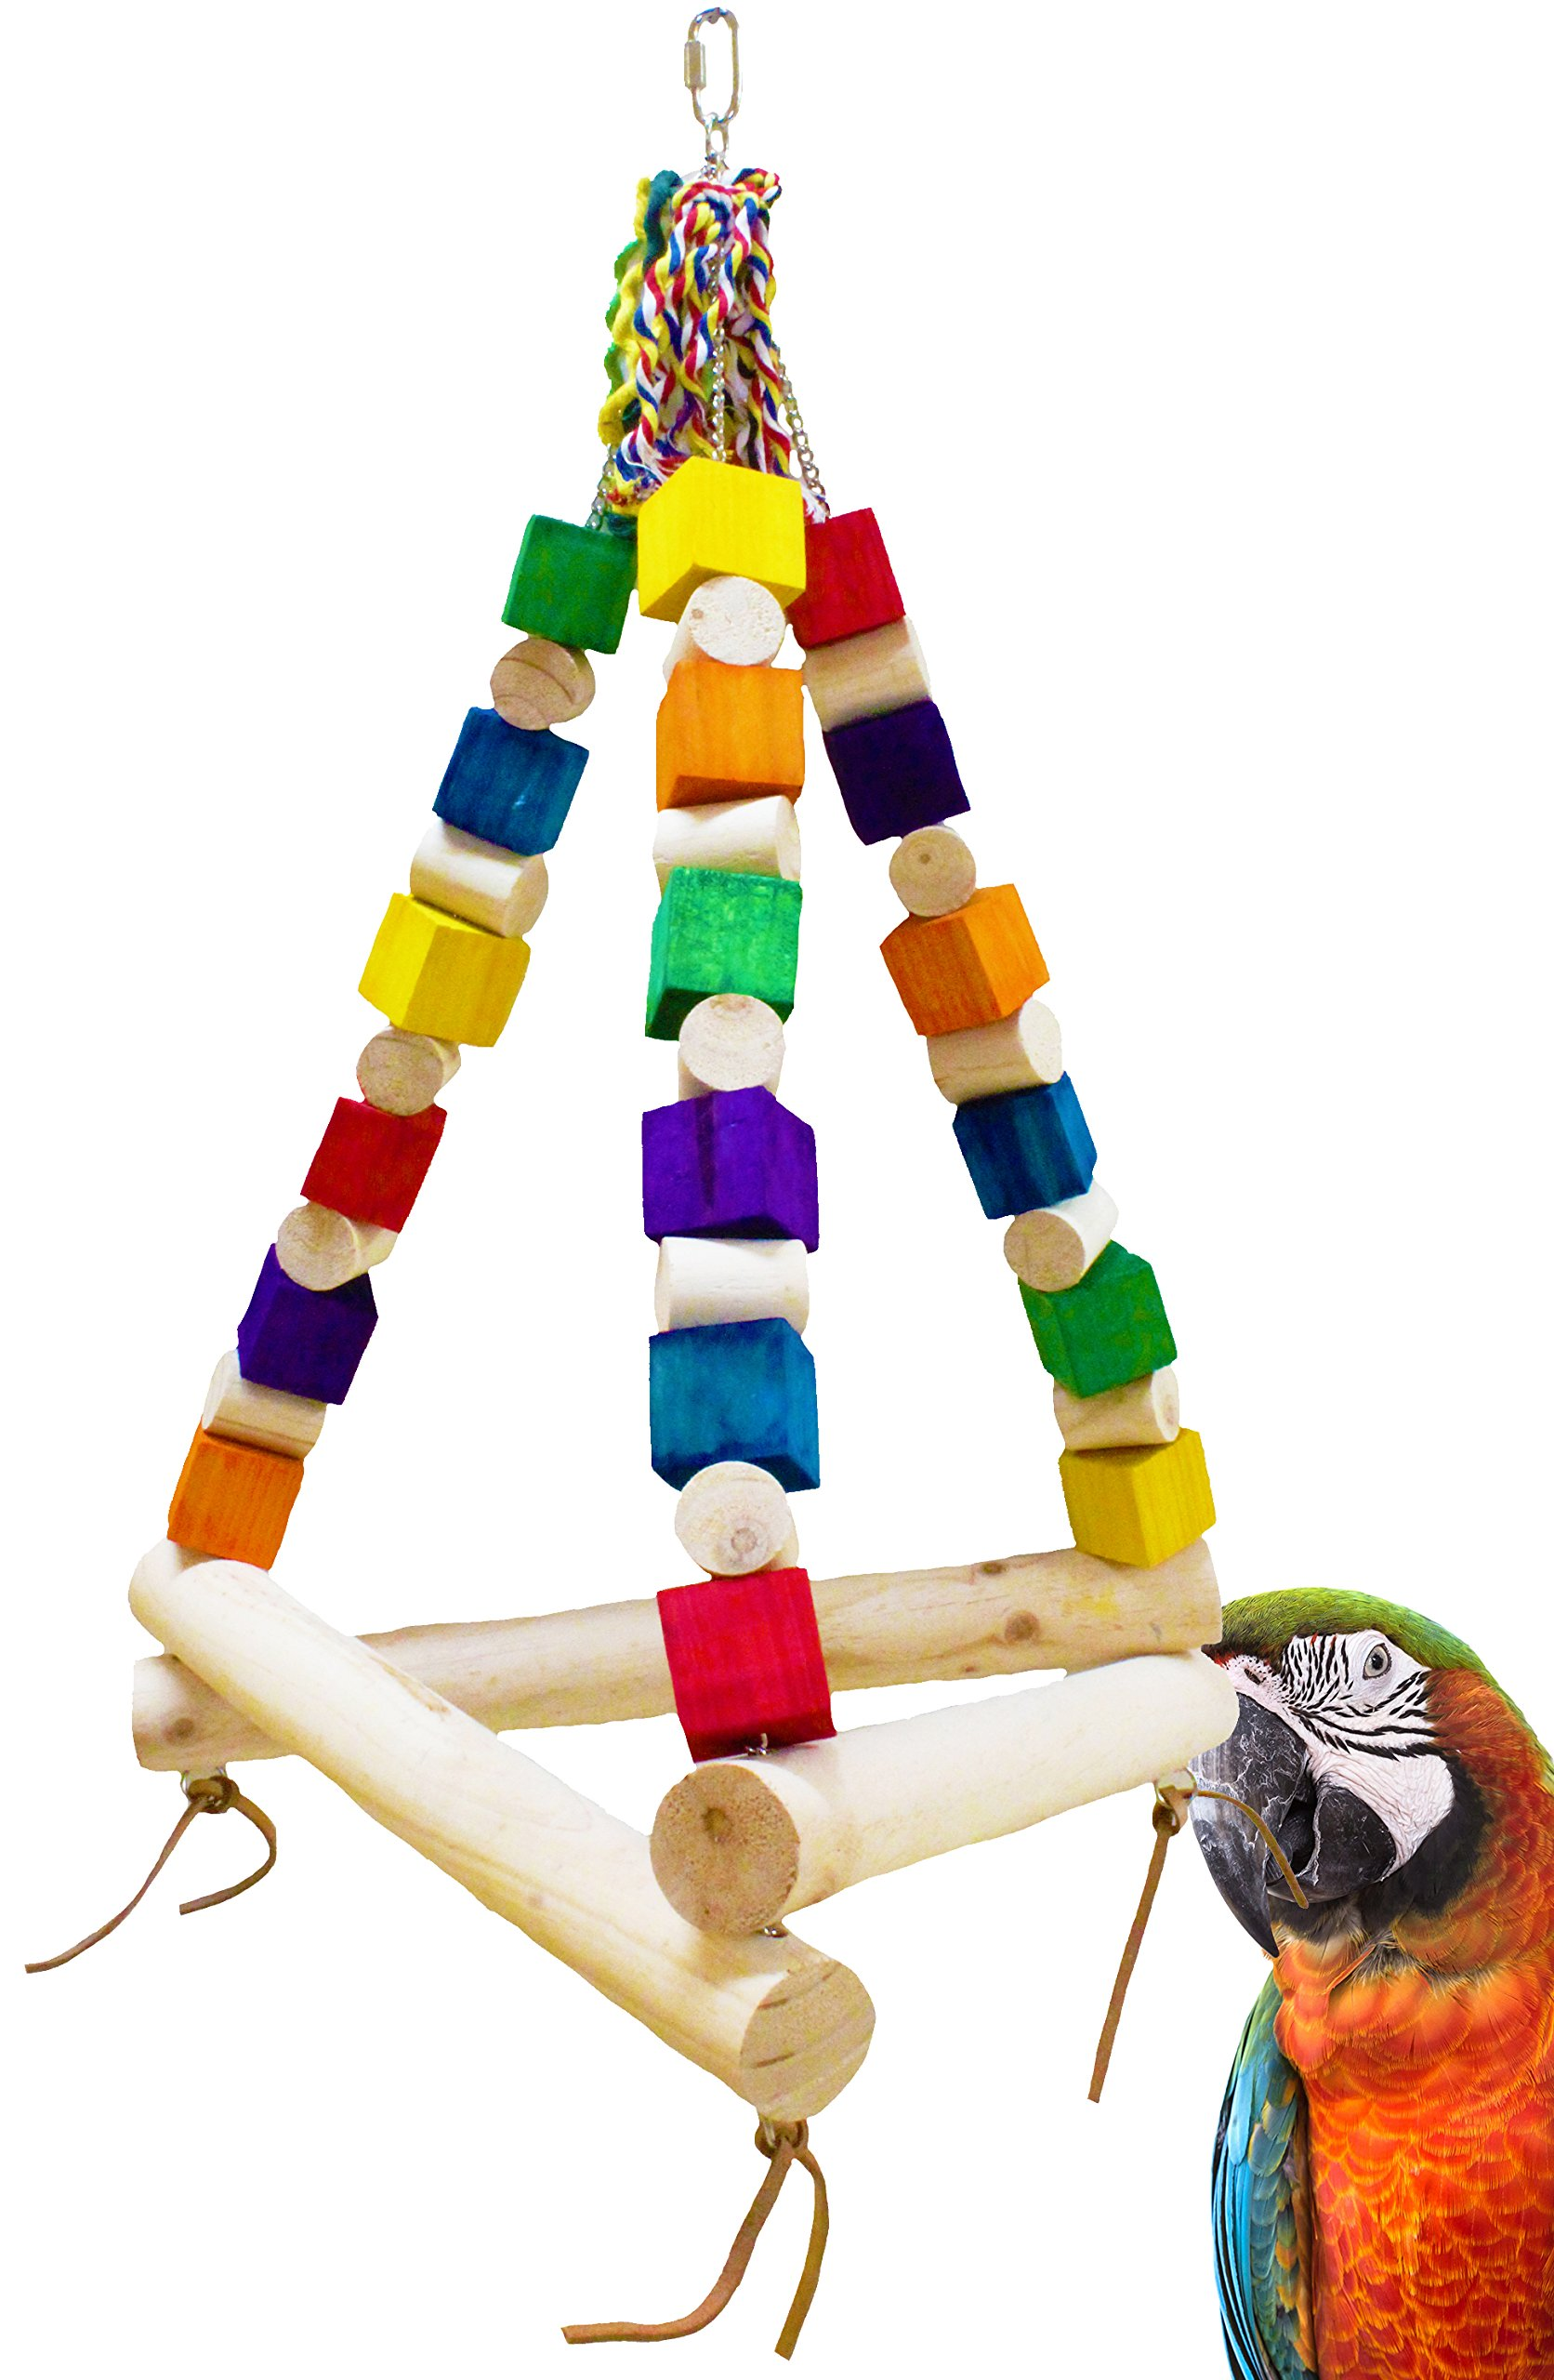 Bonka Bird Toys 1297 Jumbo Tri Swing by Bonka Bird Toys